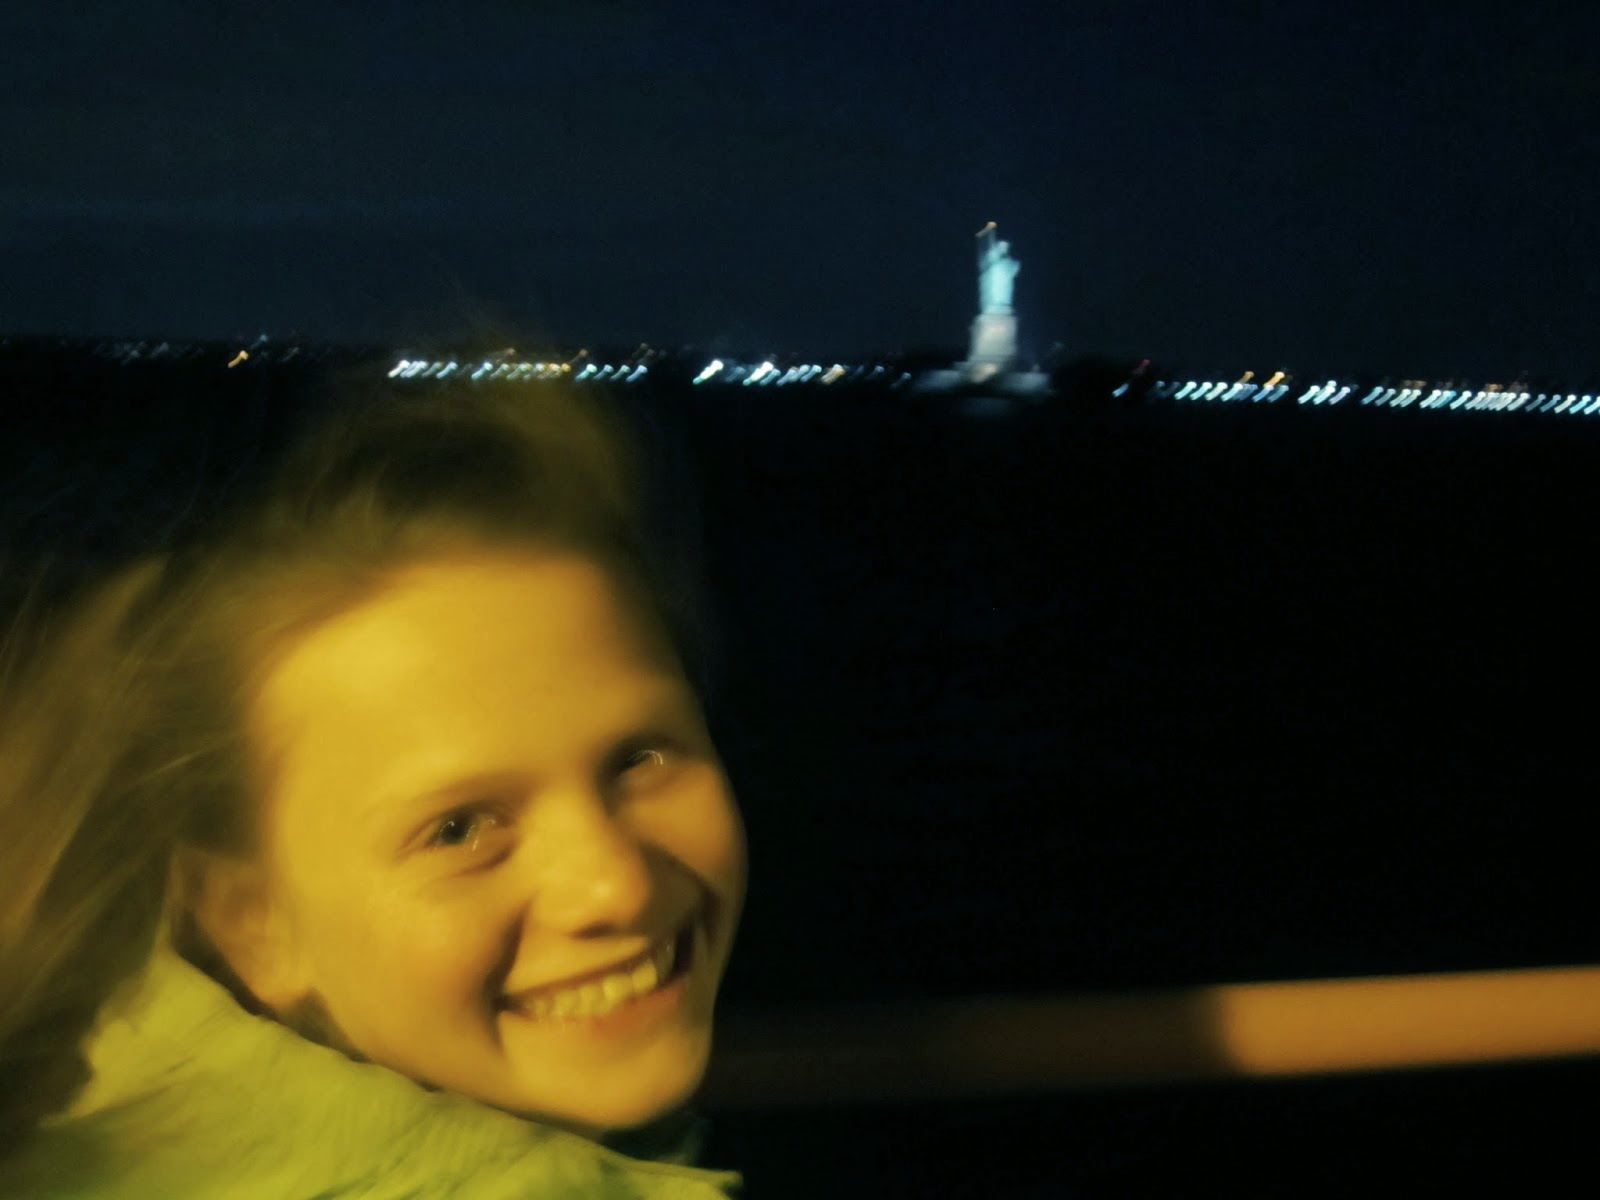 young giel smiling, New York, Statue of Liberty